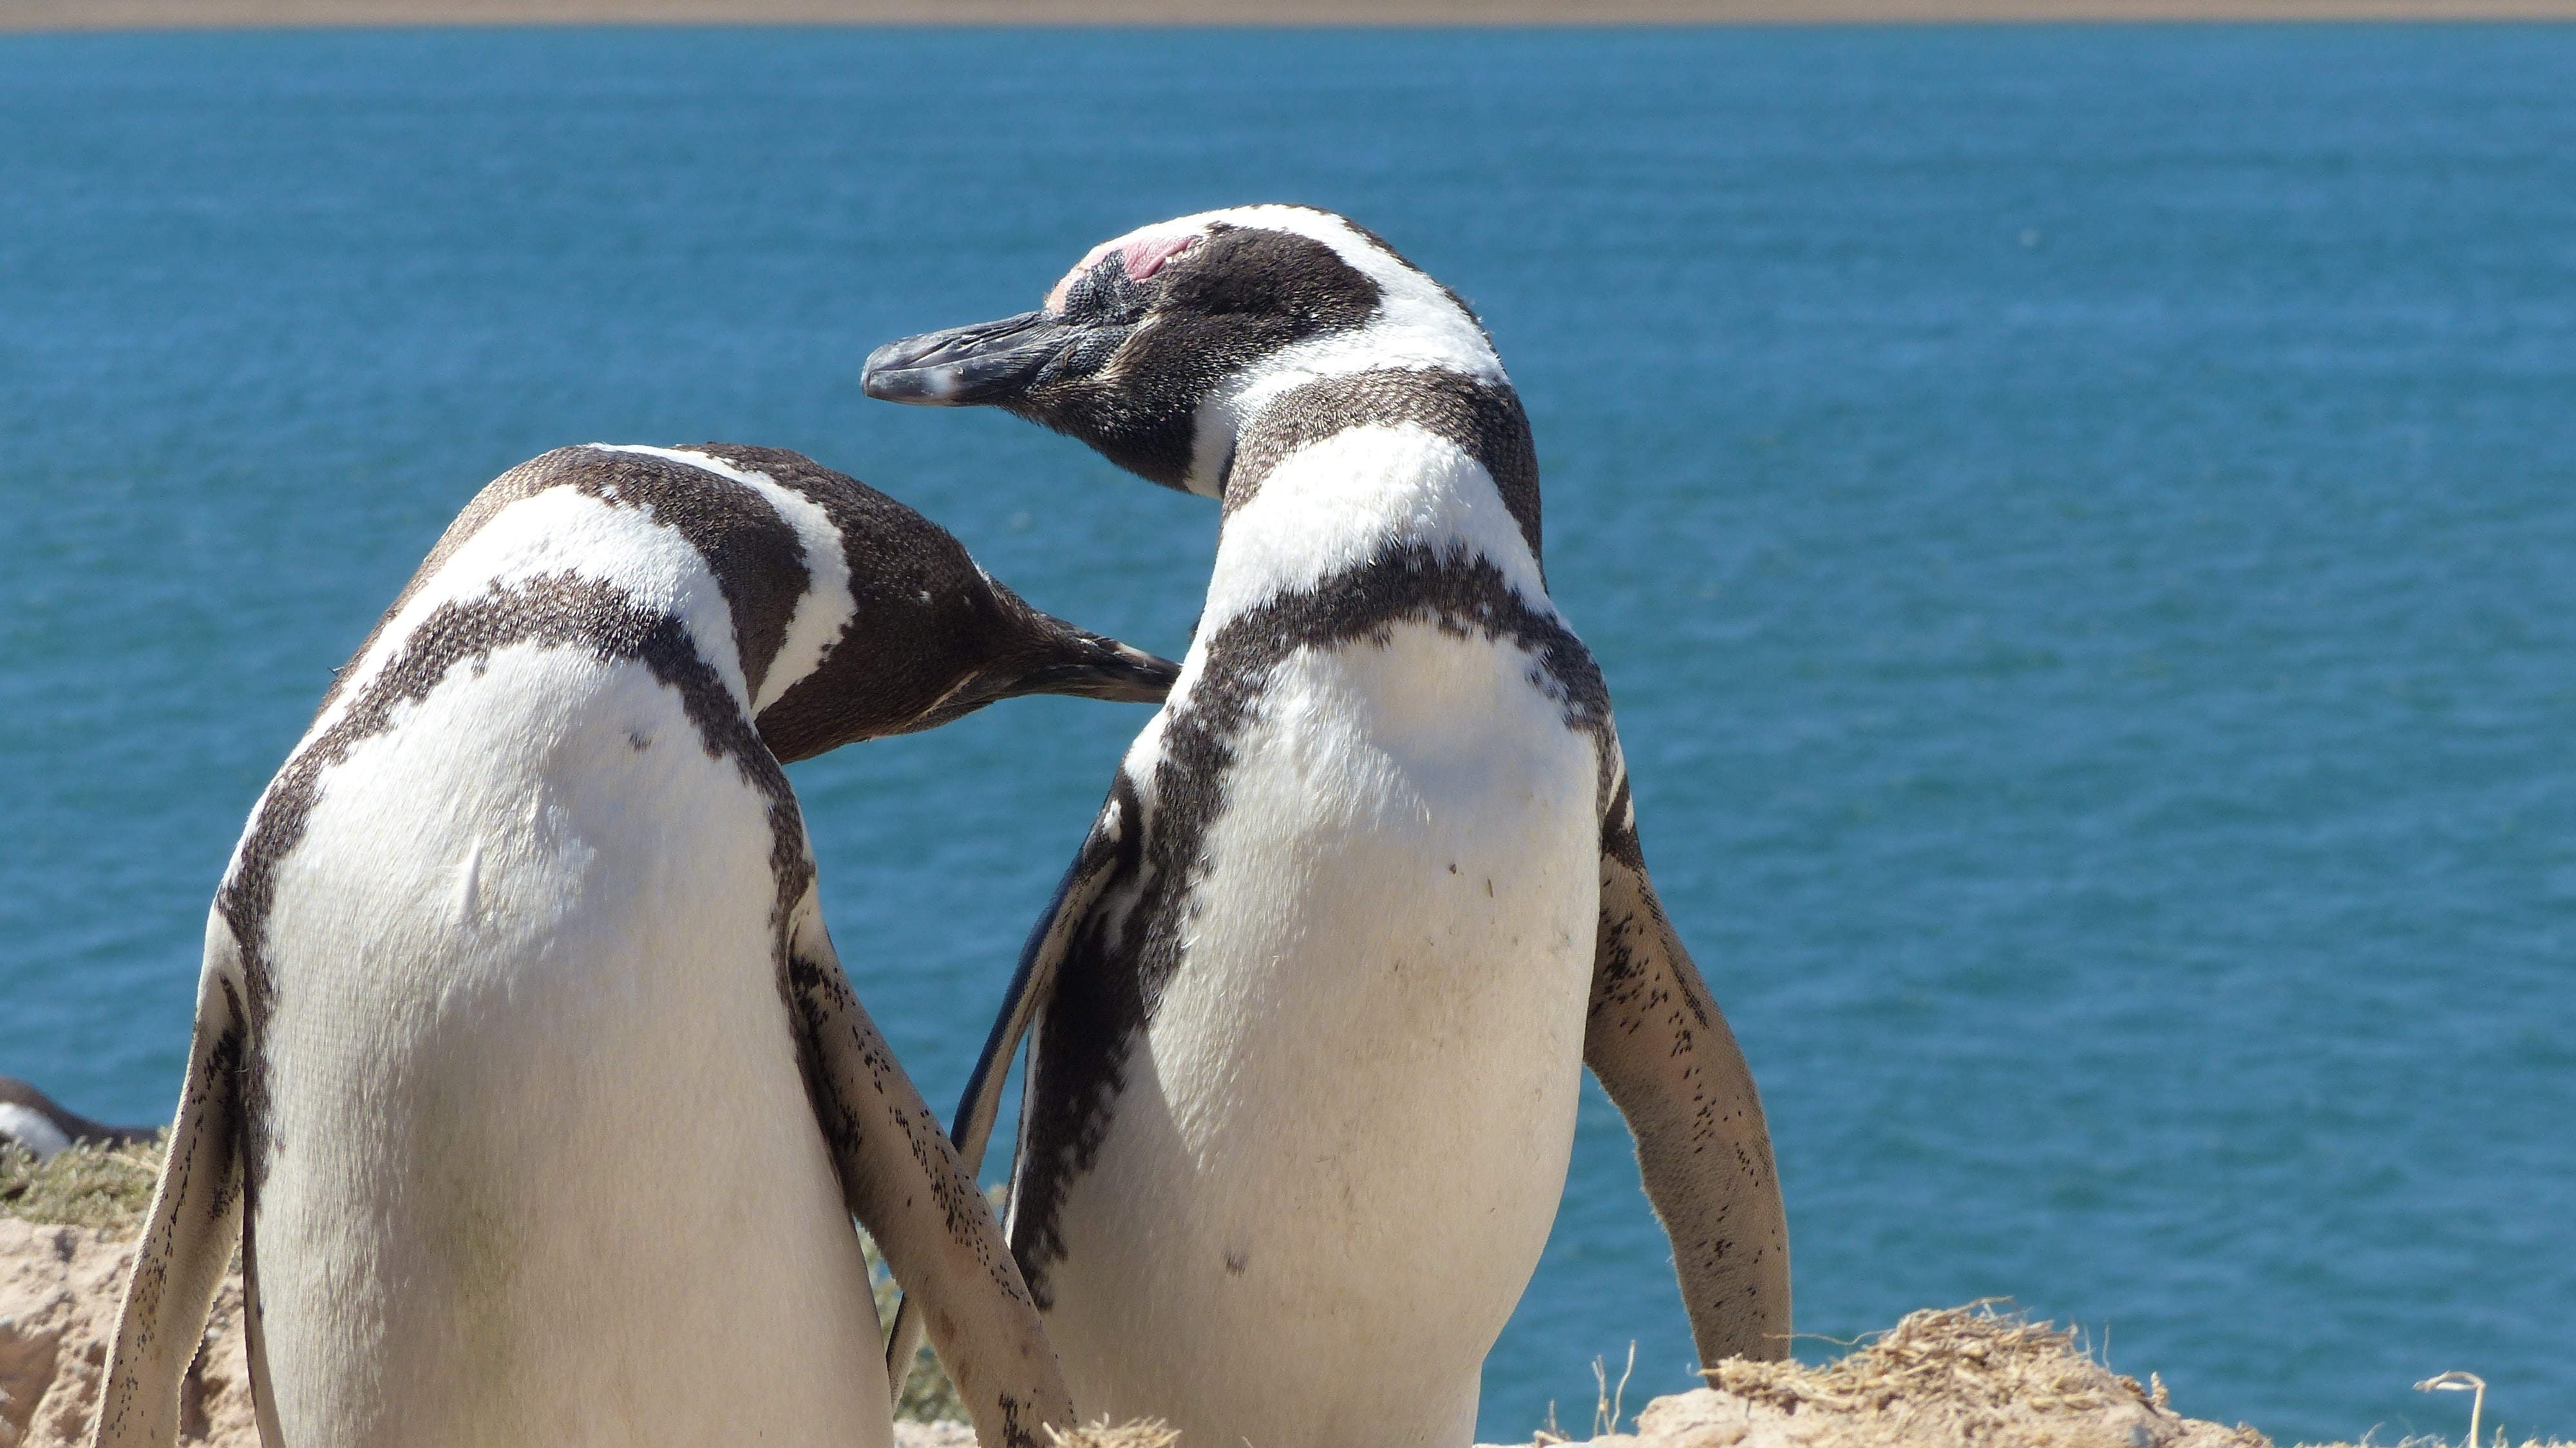 two white-and-black penguins on cliff